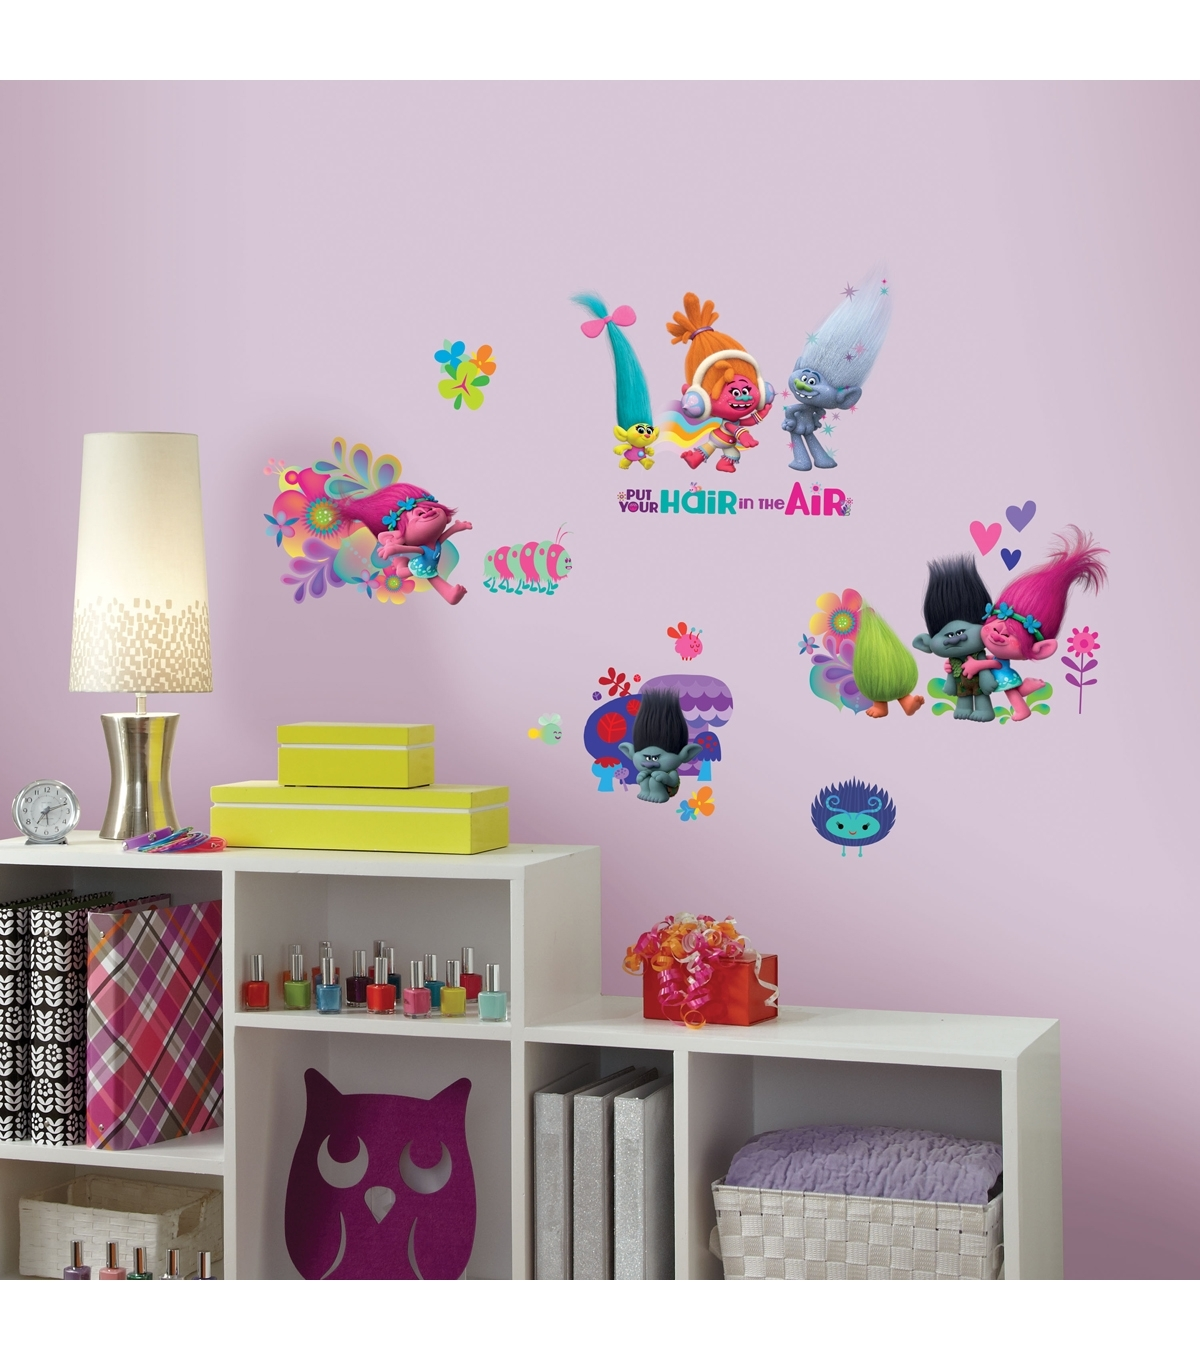 Trolls Movie Peel & Stick Wall Decals | Joann Pertaining To Current Joann Fabric Wall Art (View 13 of 15)